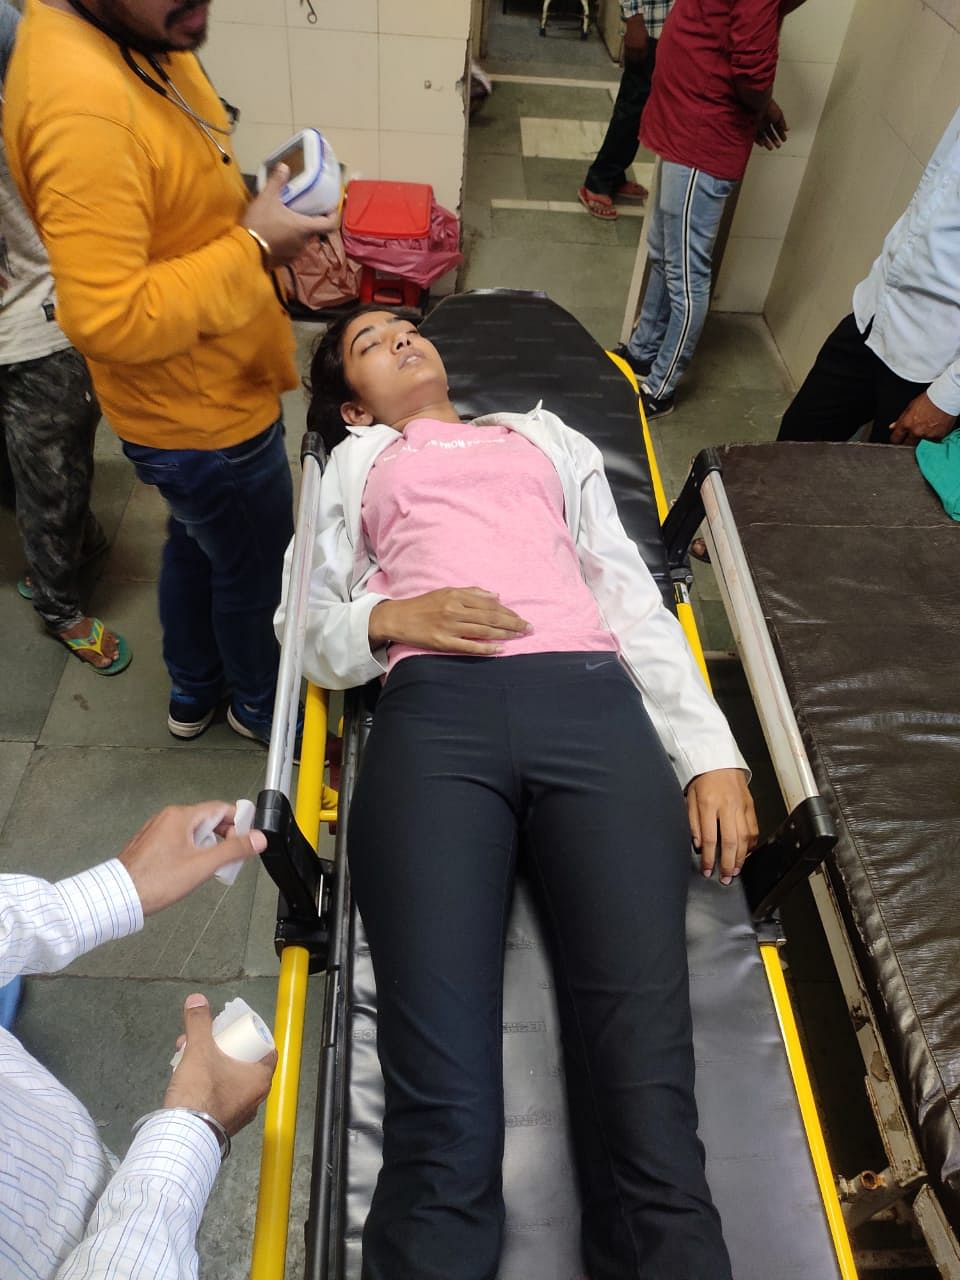 A protesting student admitted to Civil Hospital in Jhajjar.